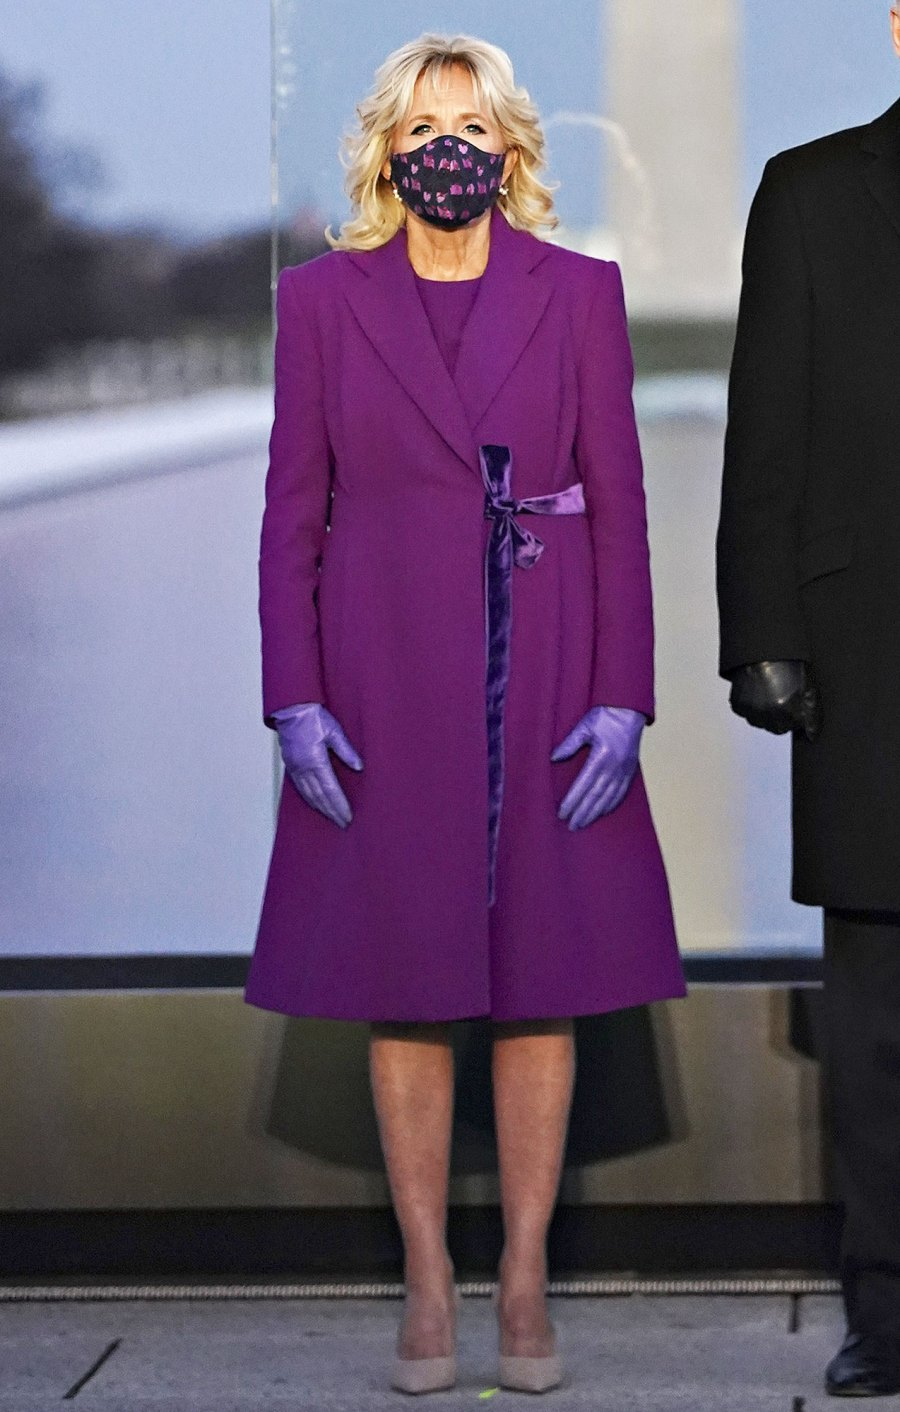 Jill Biden in Purple at at the Lincoln Memorial Reflecting Pool during a Covid-19 memorial Dr Jill Biden Most Stylish Moments Since Becoming FLOTUS